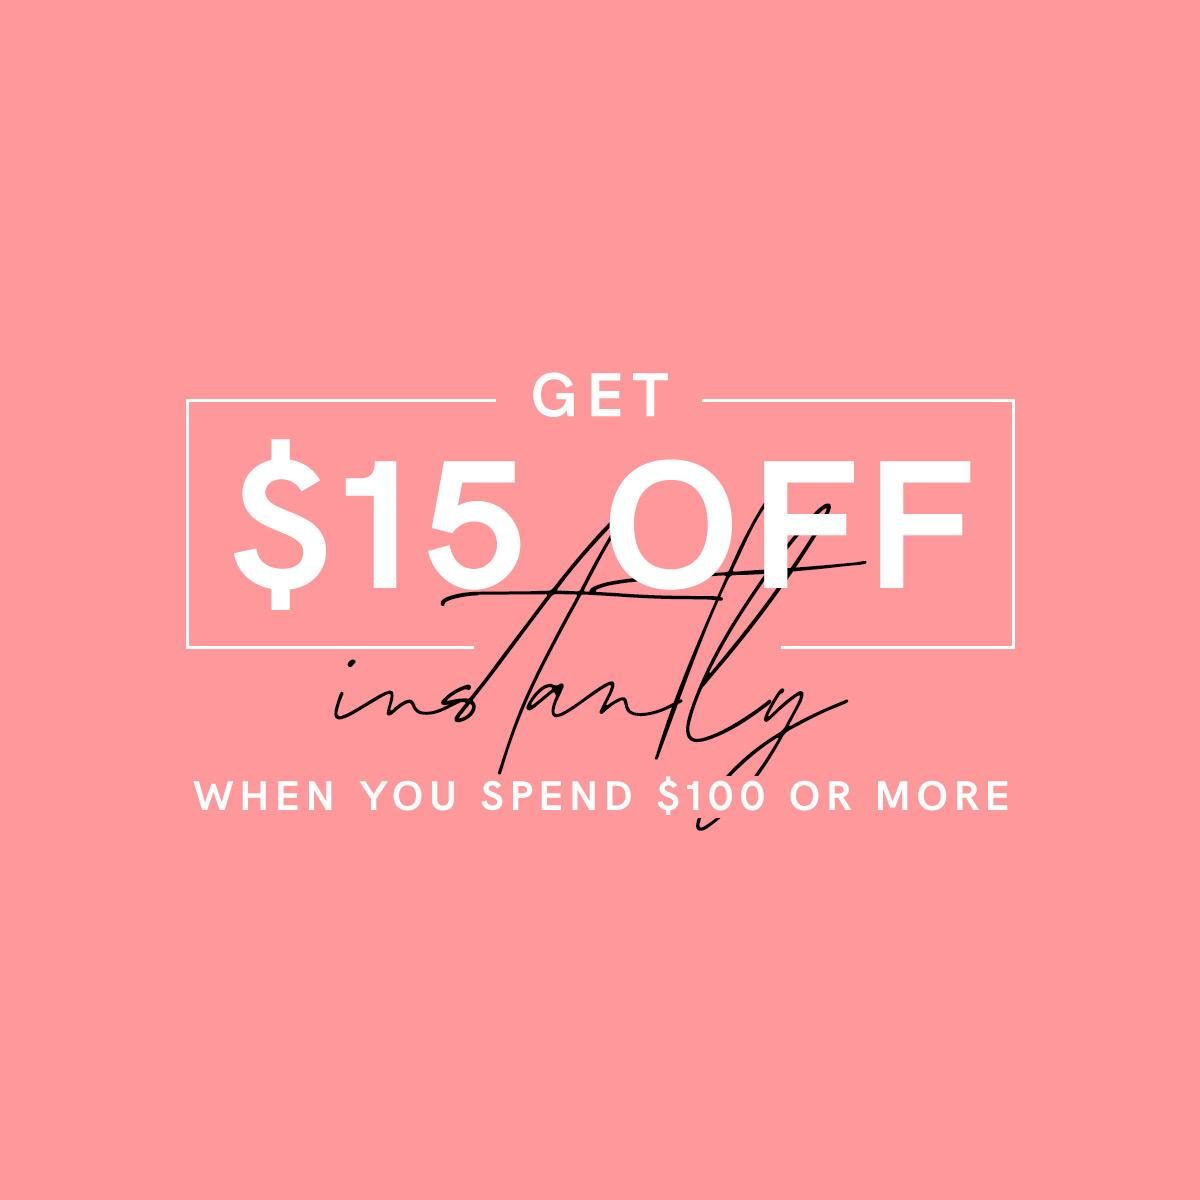 Have shopping on your Saturday agenda? Good news: get $15 off instantly when you spend $100 or more! Offer is automatically applied at checkout when you click the link below.  Shop Now: https://t.co/RpVbkH1d2b~ https://t.co/FdQoXfgkT7